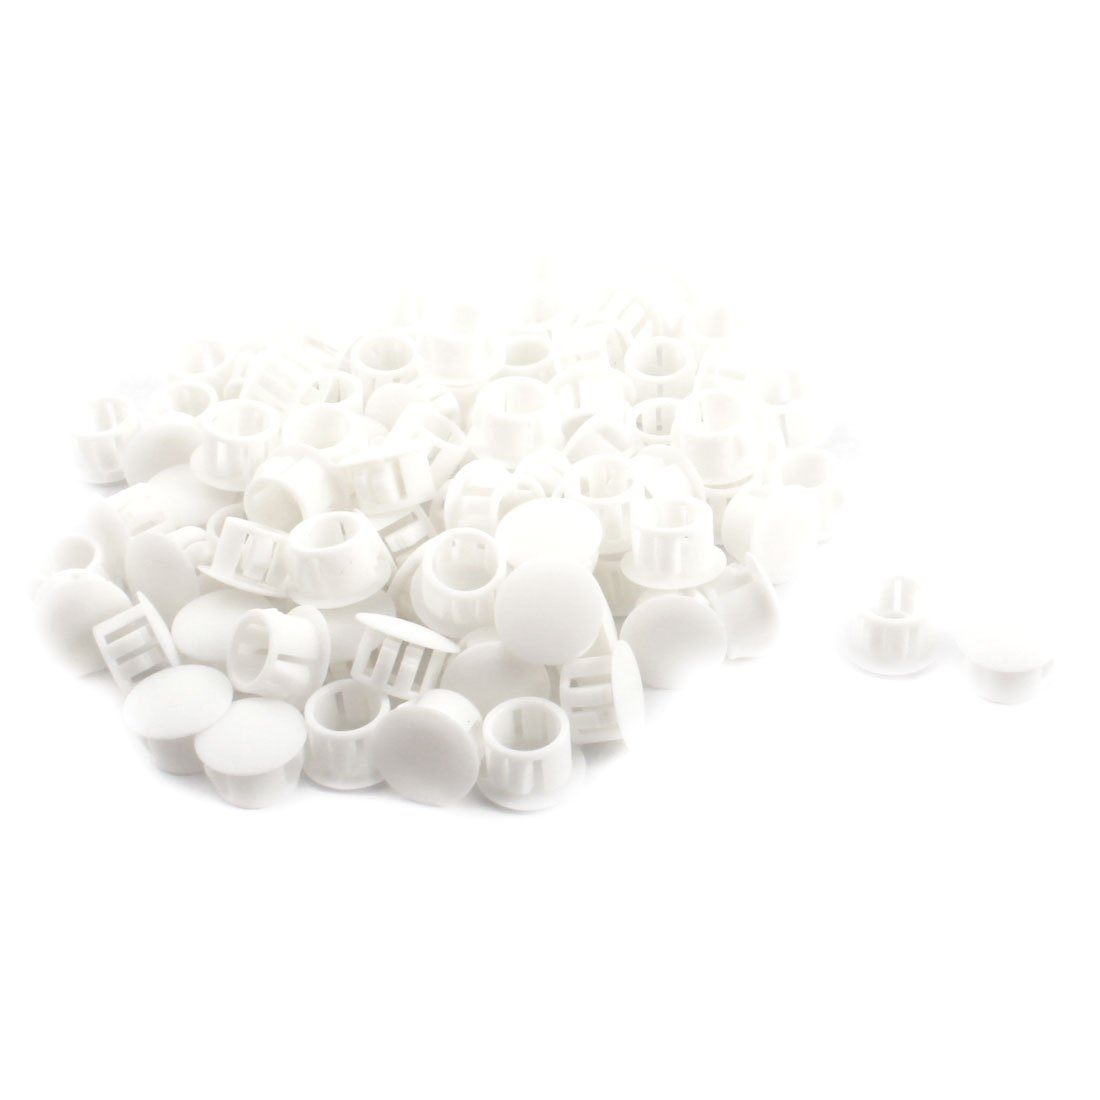 uxcell SKT-13 12.7mm Dia Round Insulated White Plastic Snap in Mount Lock Hole Cover Harness Fastener 100Pcs